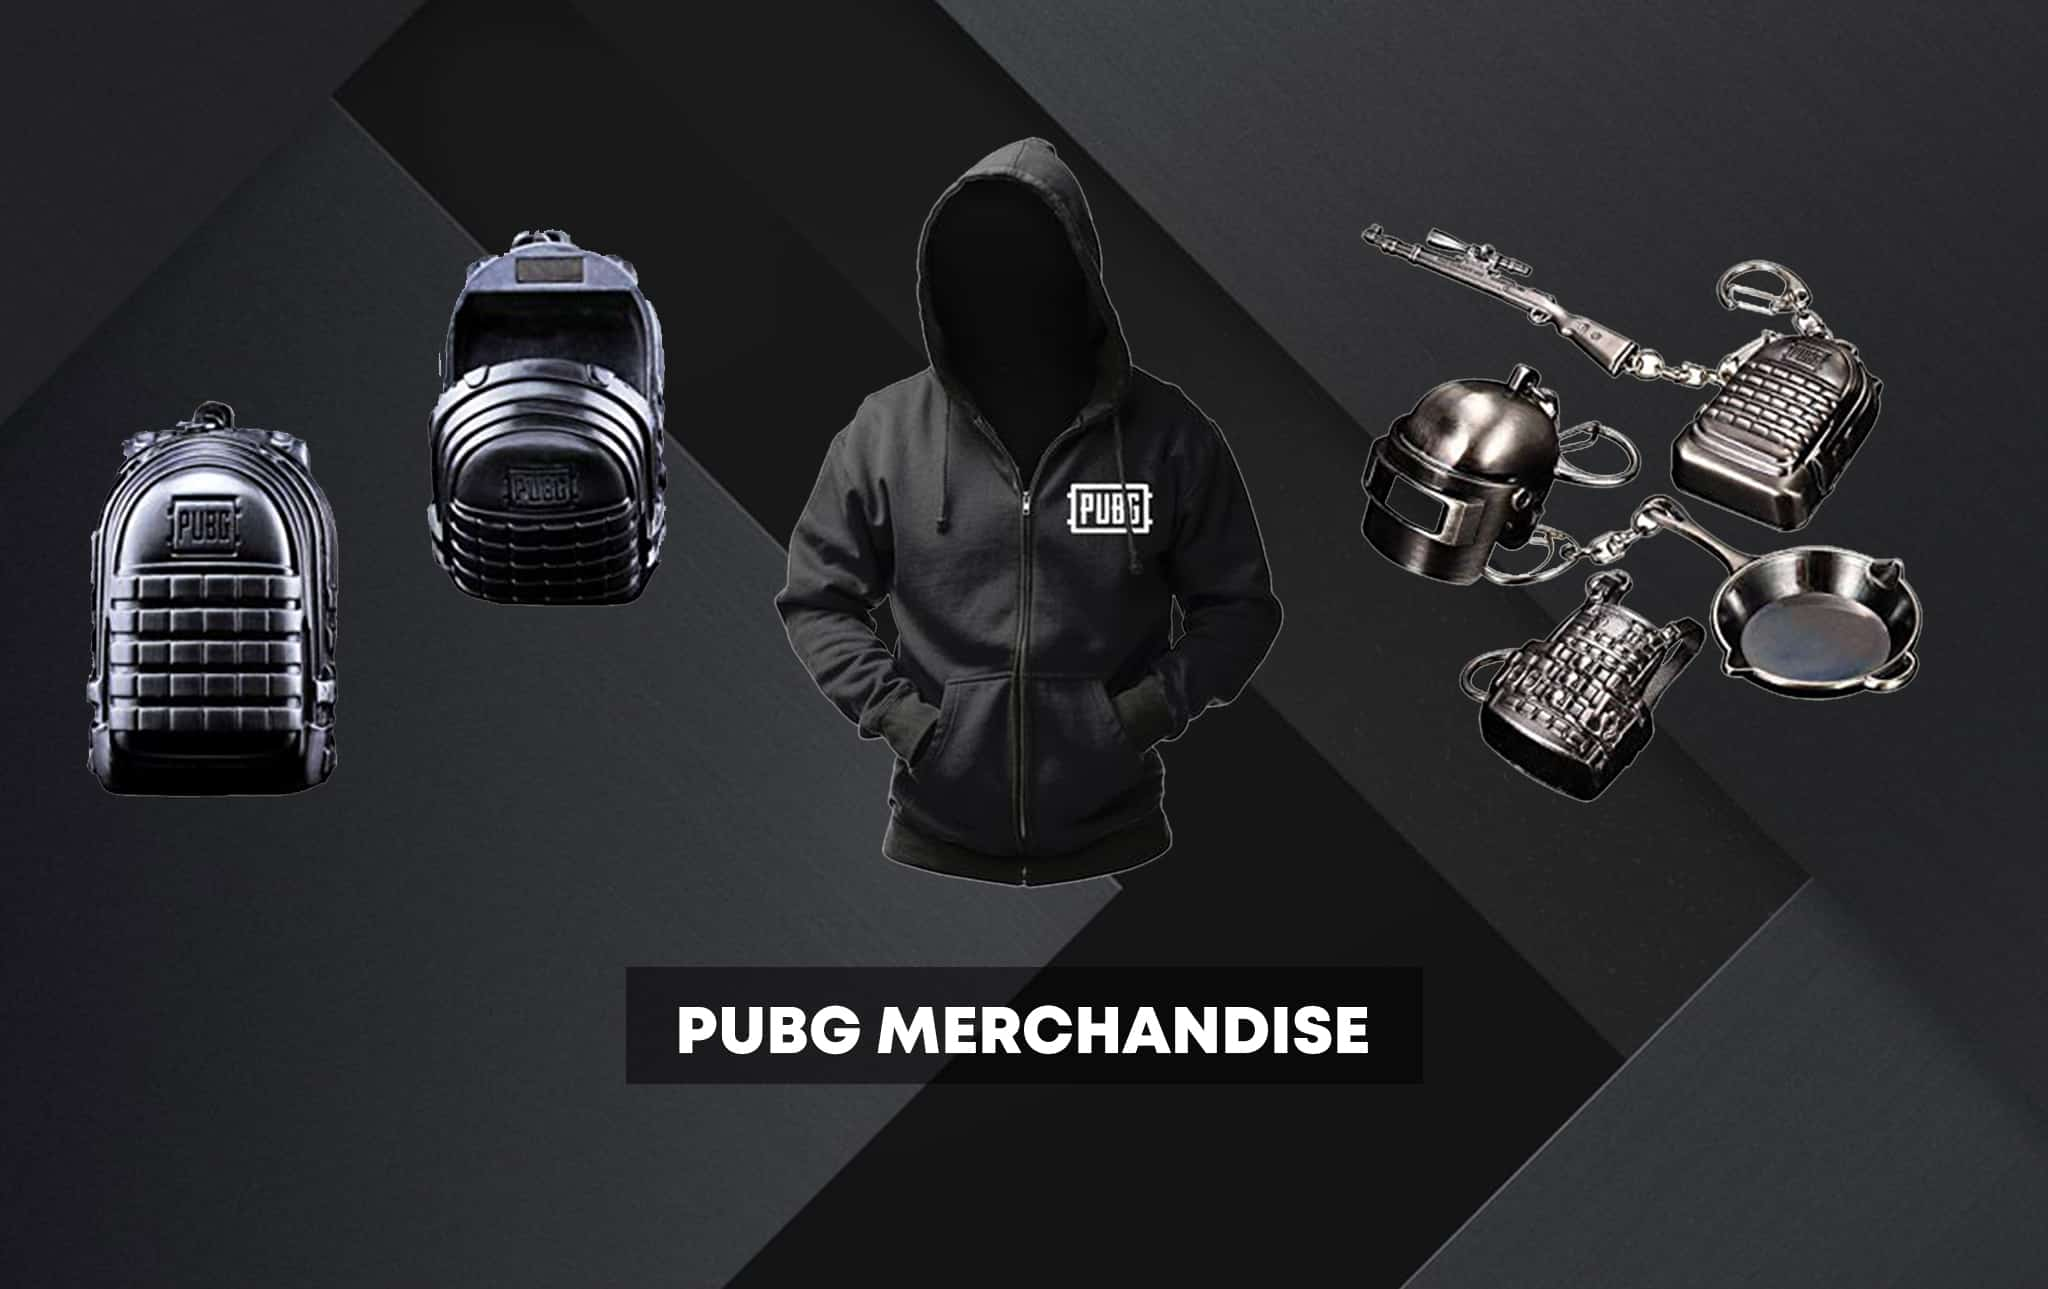 PUBG Merchandise: T Shirts, Clothes, Collectibles from the Game